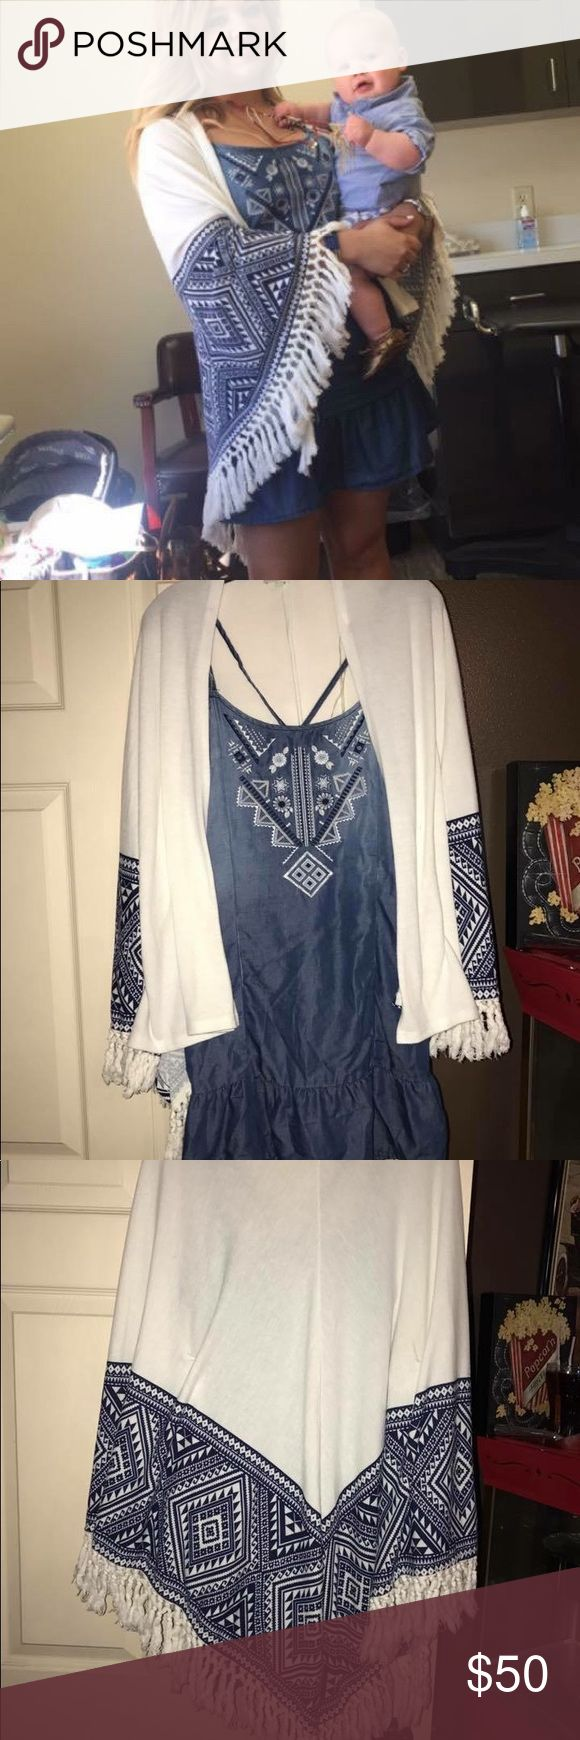 Gianni Bini chambray dress& Gianni Bini kimono Gianni Bini Chambray dress and matching Gianni Bini kimono with fringe detailing! Both worn only once! Dress is size small and kimono is size medium! Perfect condition selling together or can be sold separately! Gianni Bini Dresses Mini